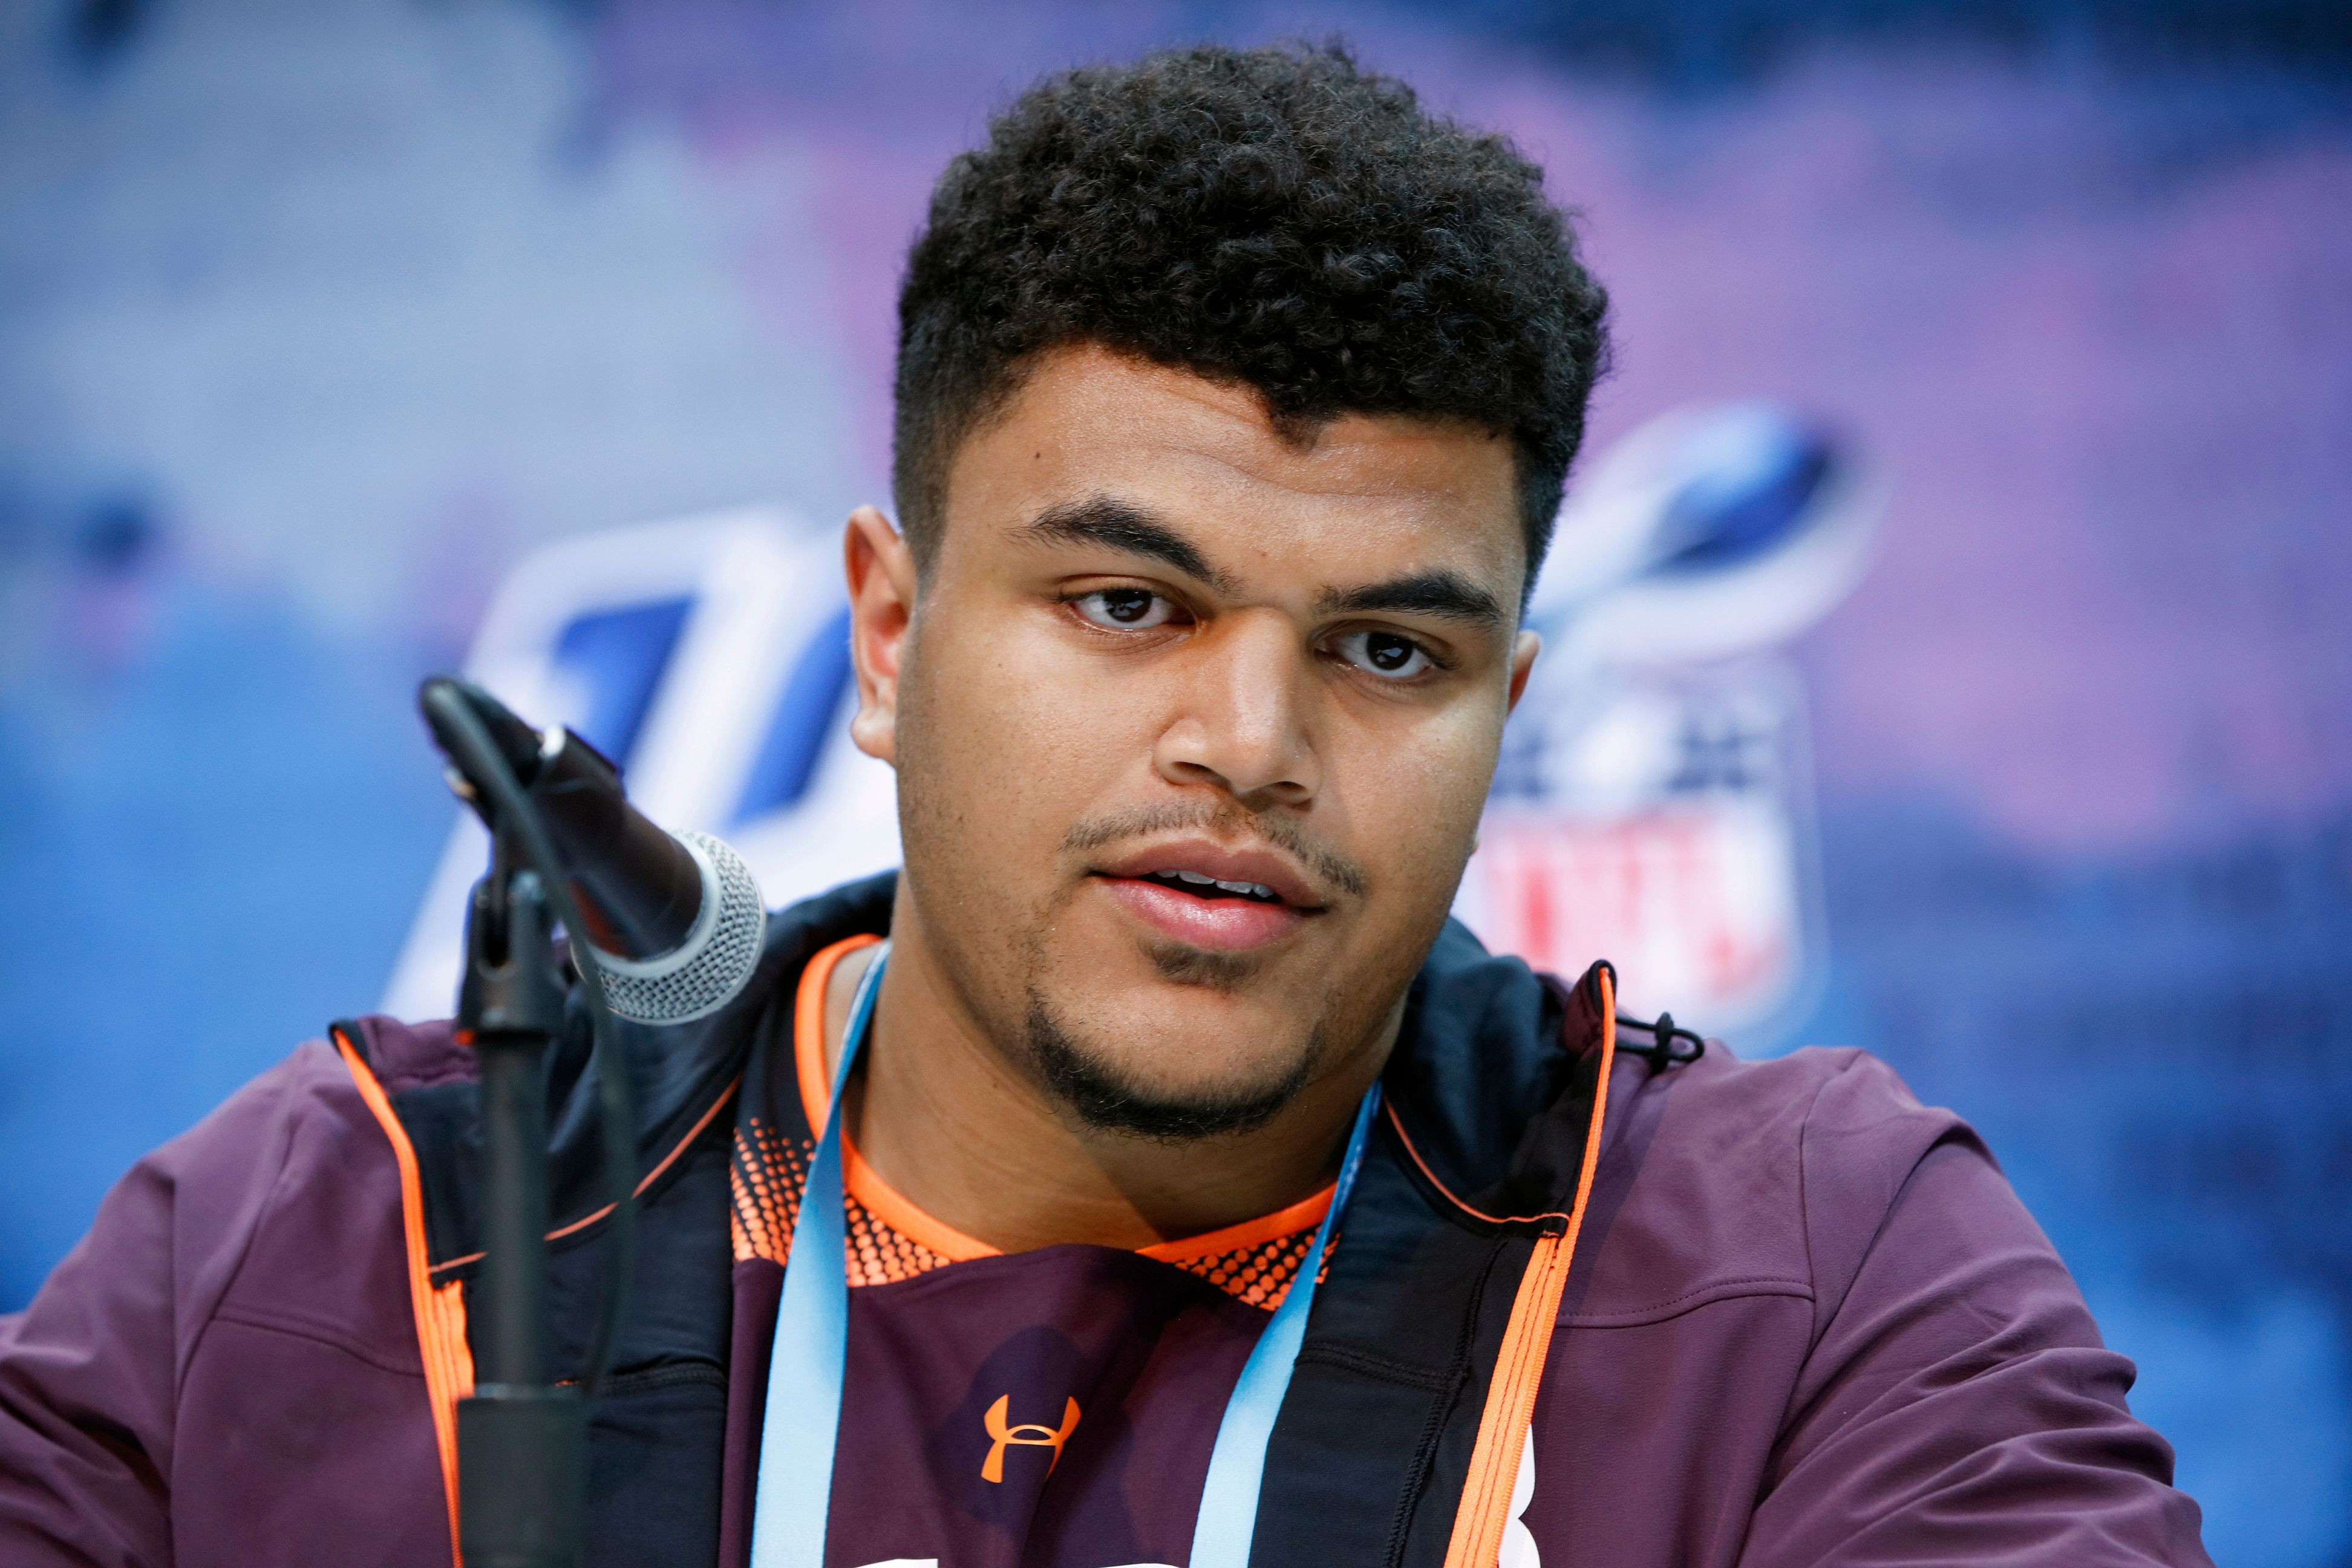 Andre Dillard during a press conference